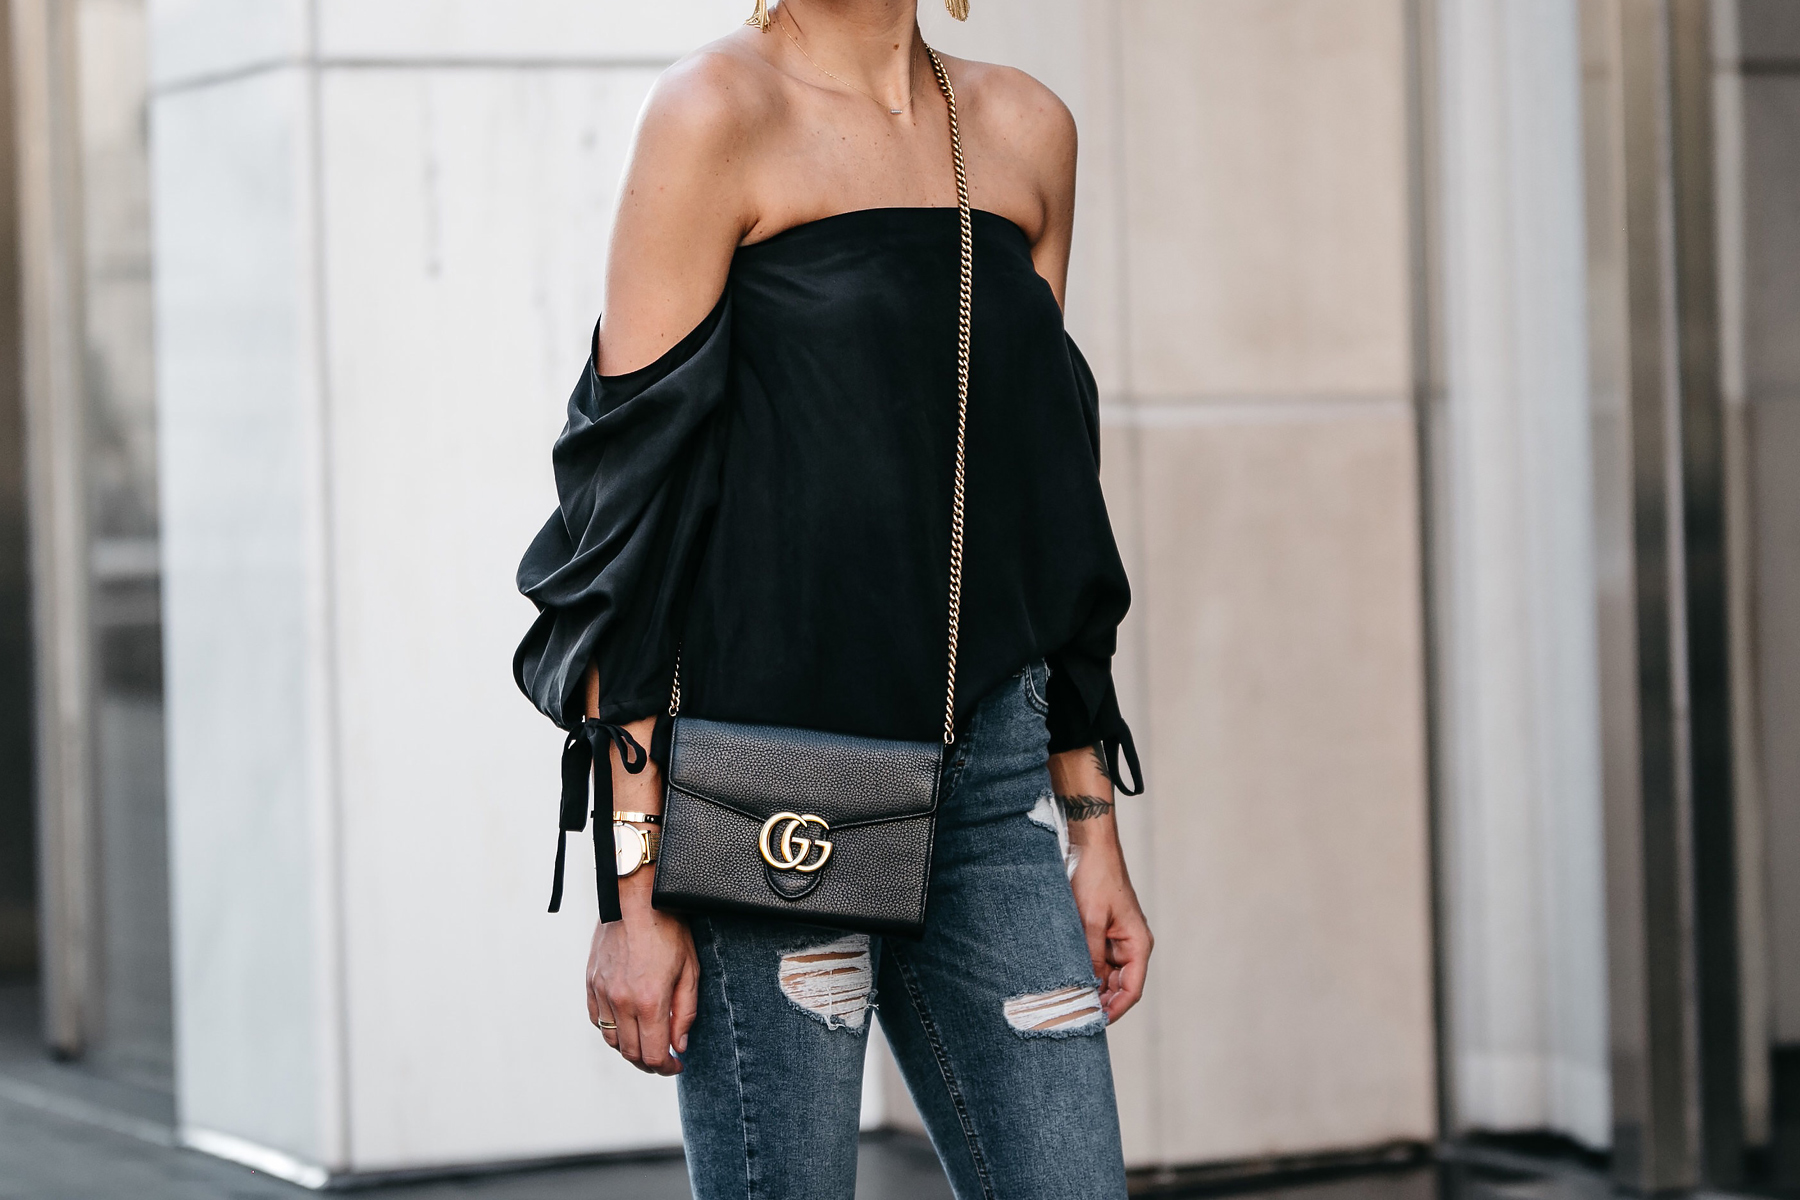 Club Monaco Black Off-the-Shoulder Top Gucci Marmont Handbag